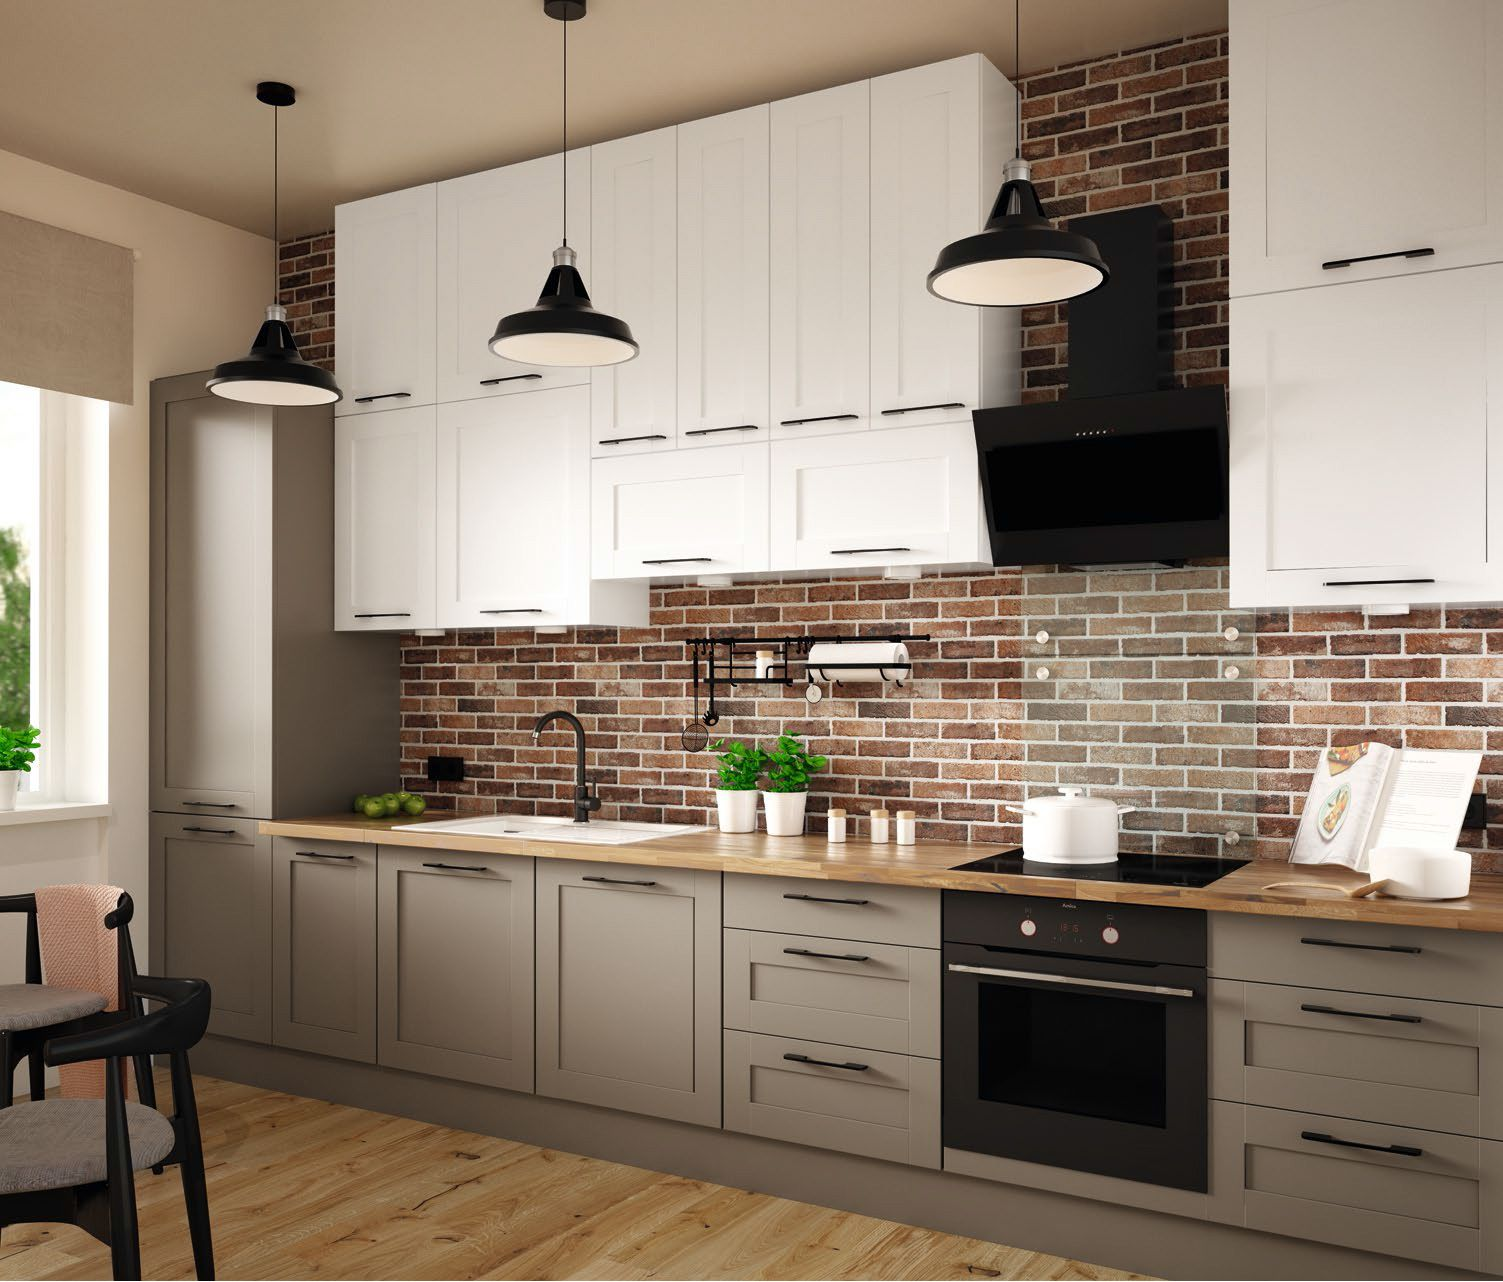 Co To Za Kolor Taupe Z Czym Laczyc Taupe We Wnetrzach Learning From Hollywood Home Decor Kitchen Kitchen Cabinets